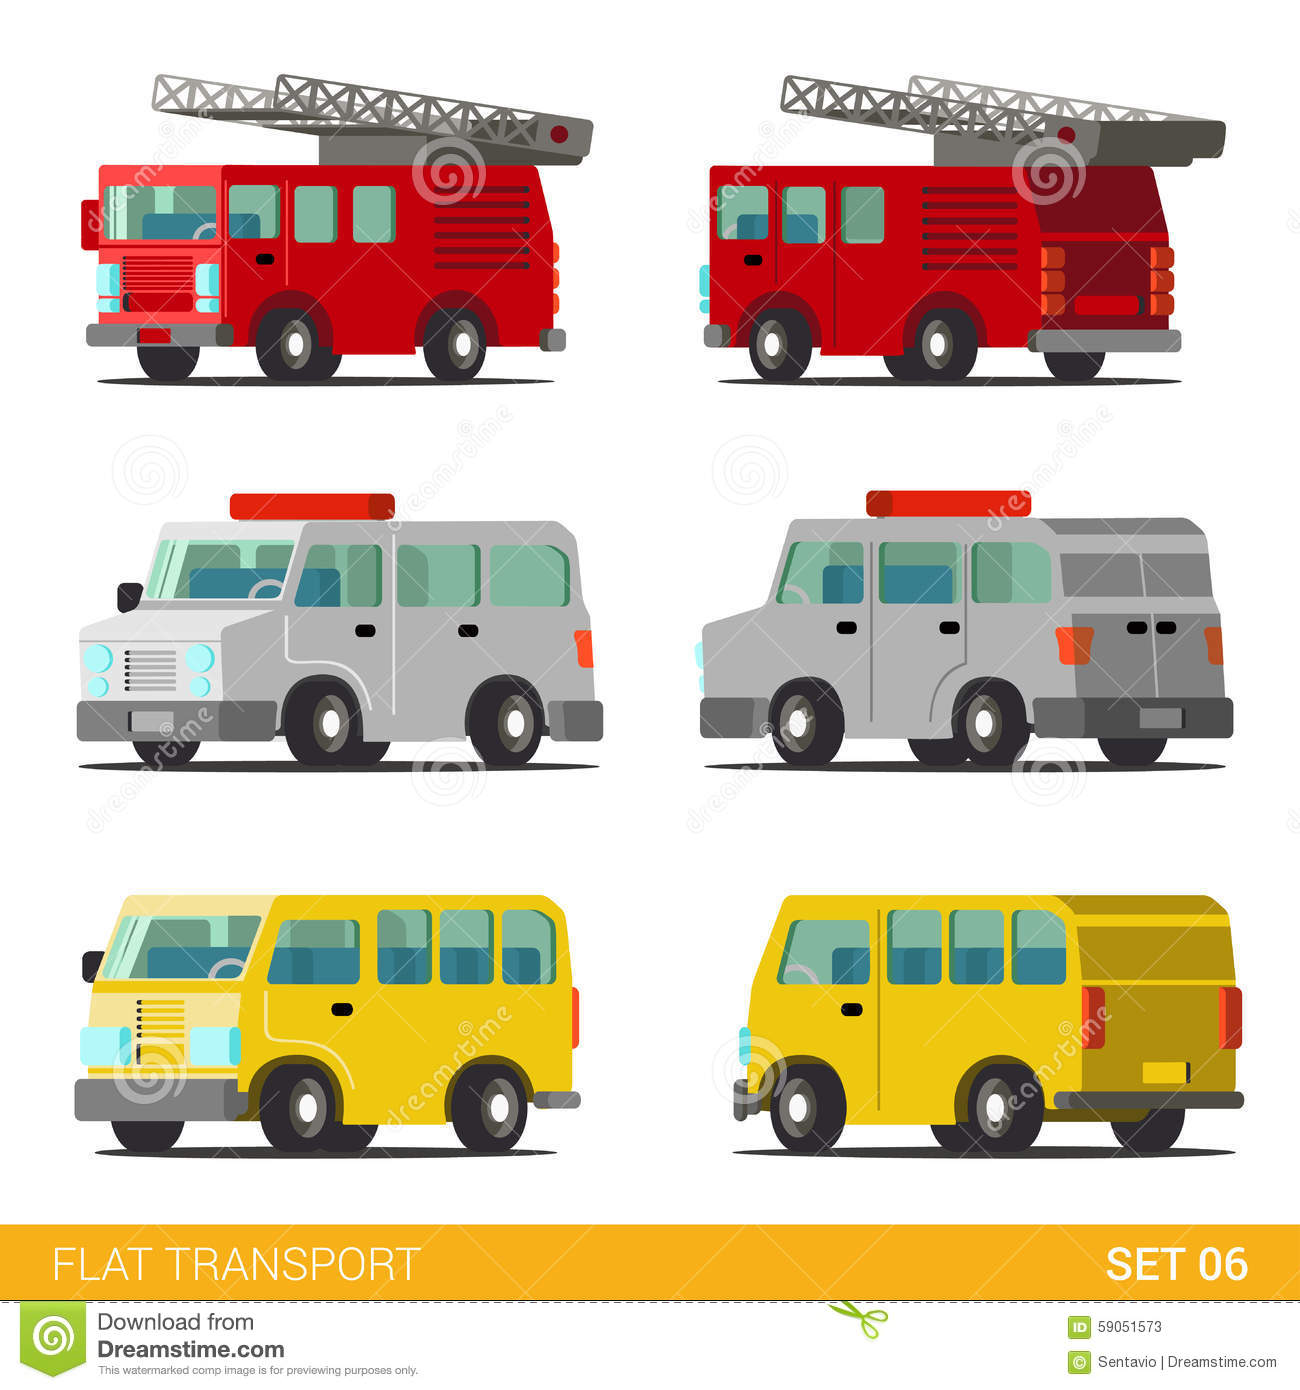 7 3D Transportation Icon Images